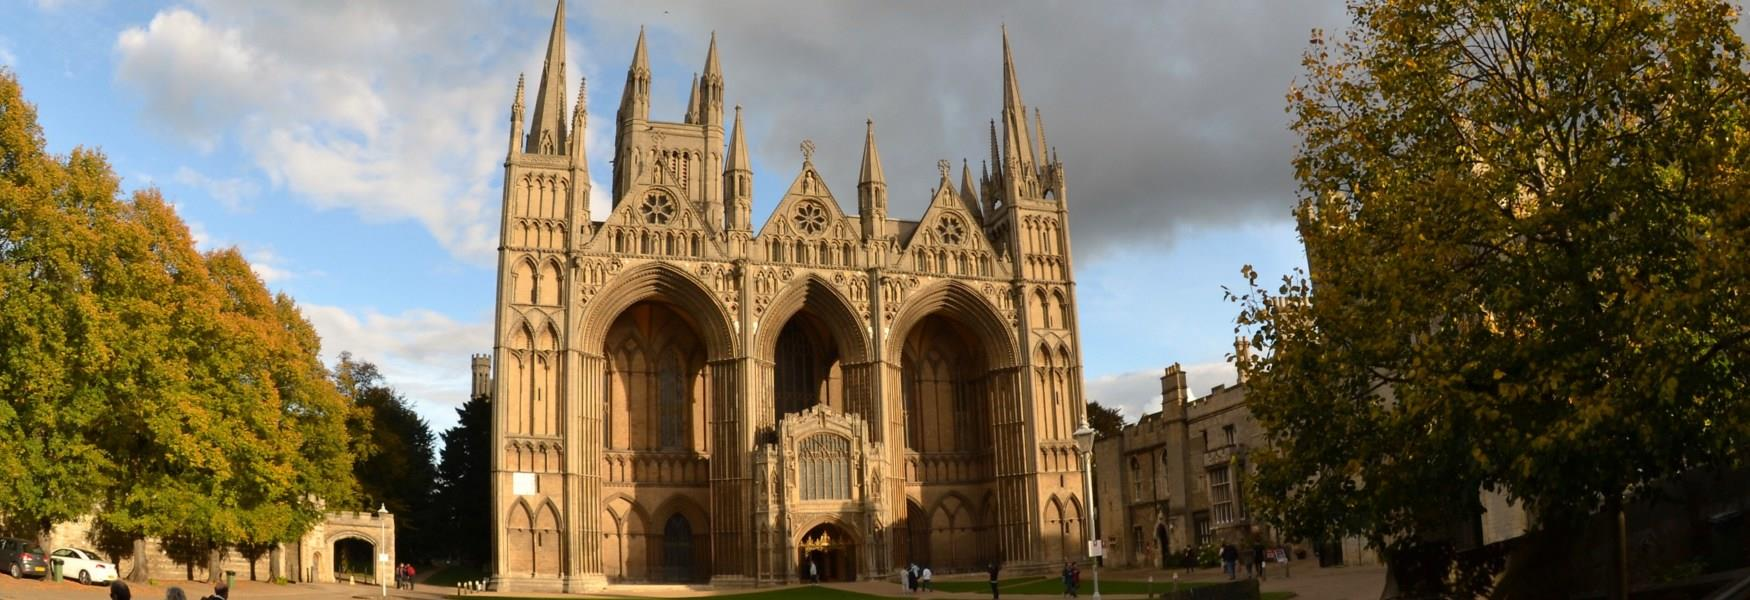 Peterborough Cathedral front view